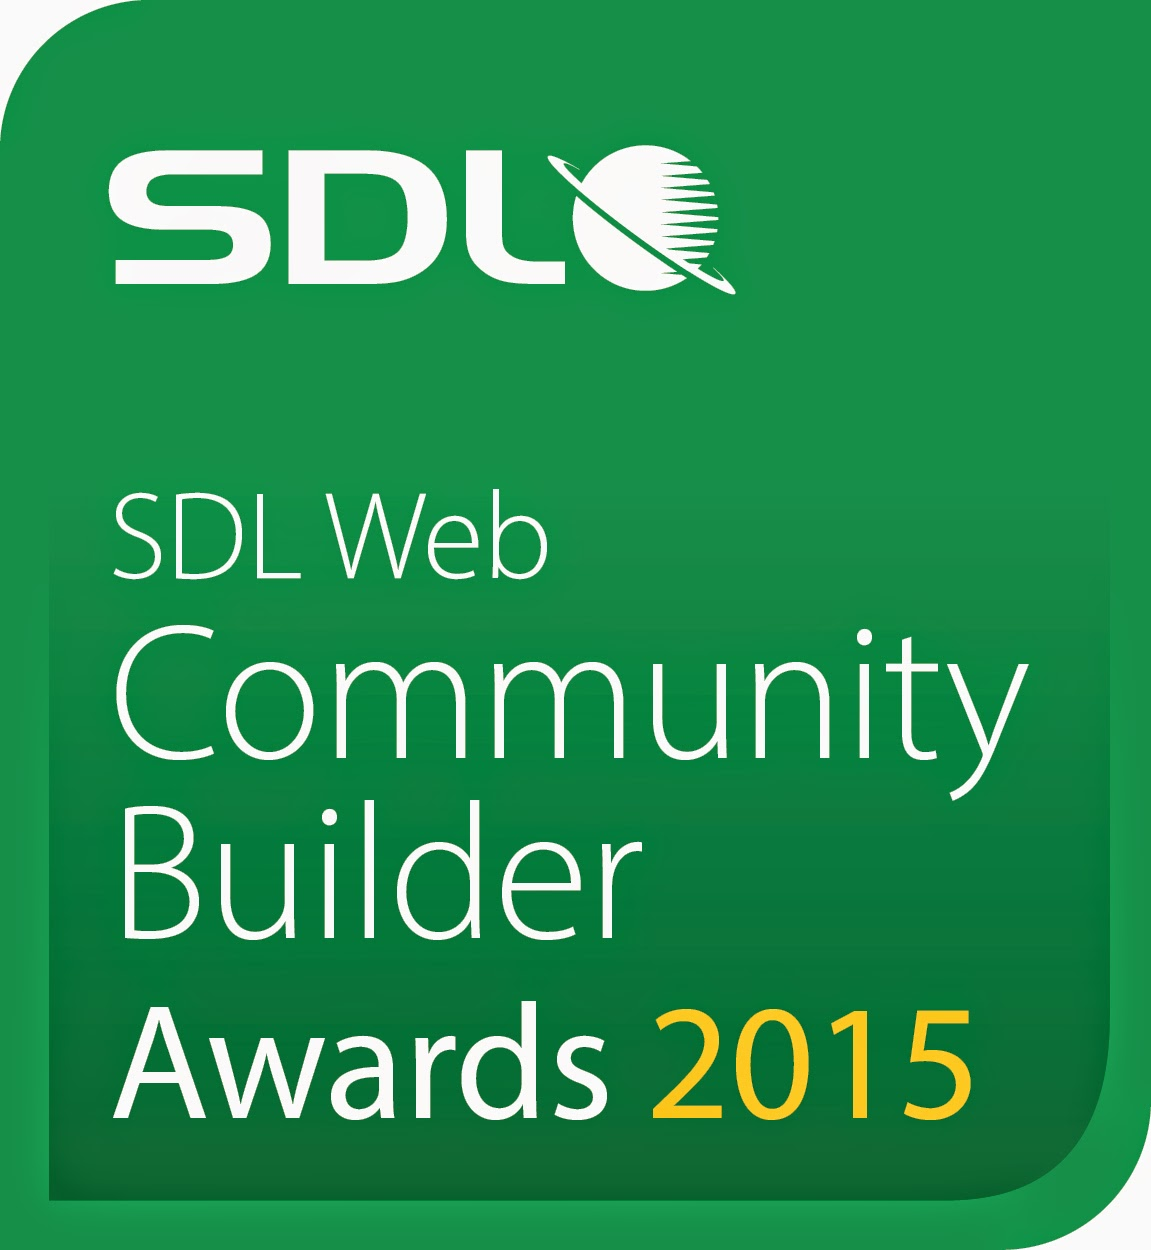 2015 SDL Web Community Builder Award